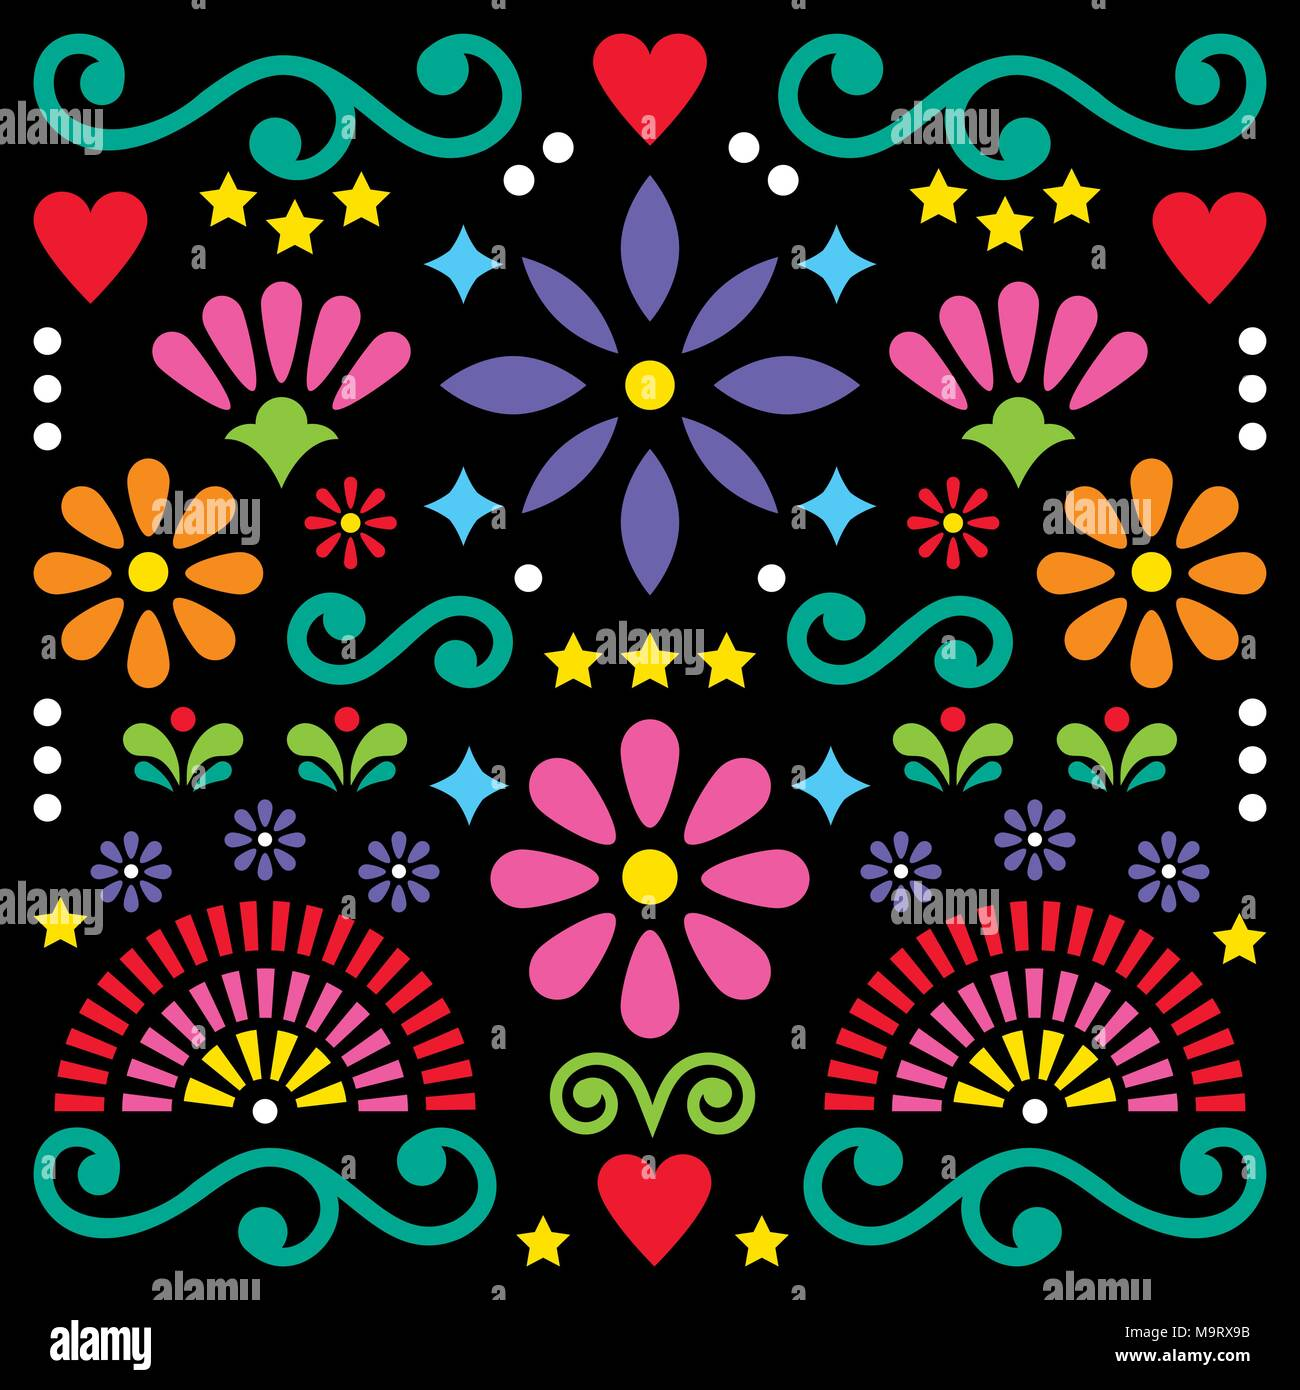 Mexican folk art vector pattern, colorful design with flowers greeting card inspired by traditional designs from Mexico - Stock Image